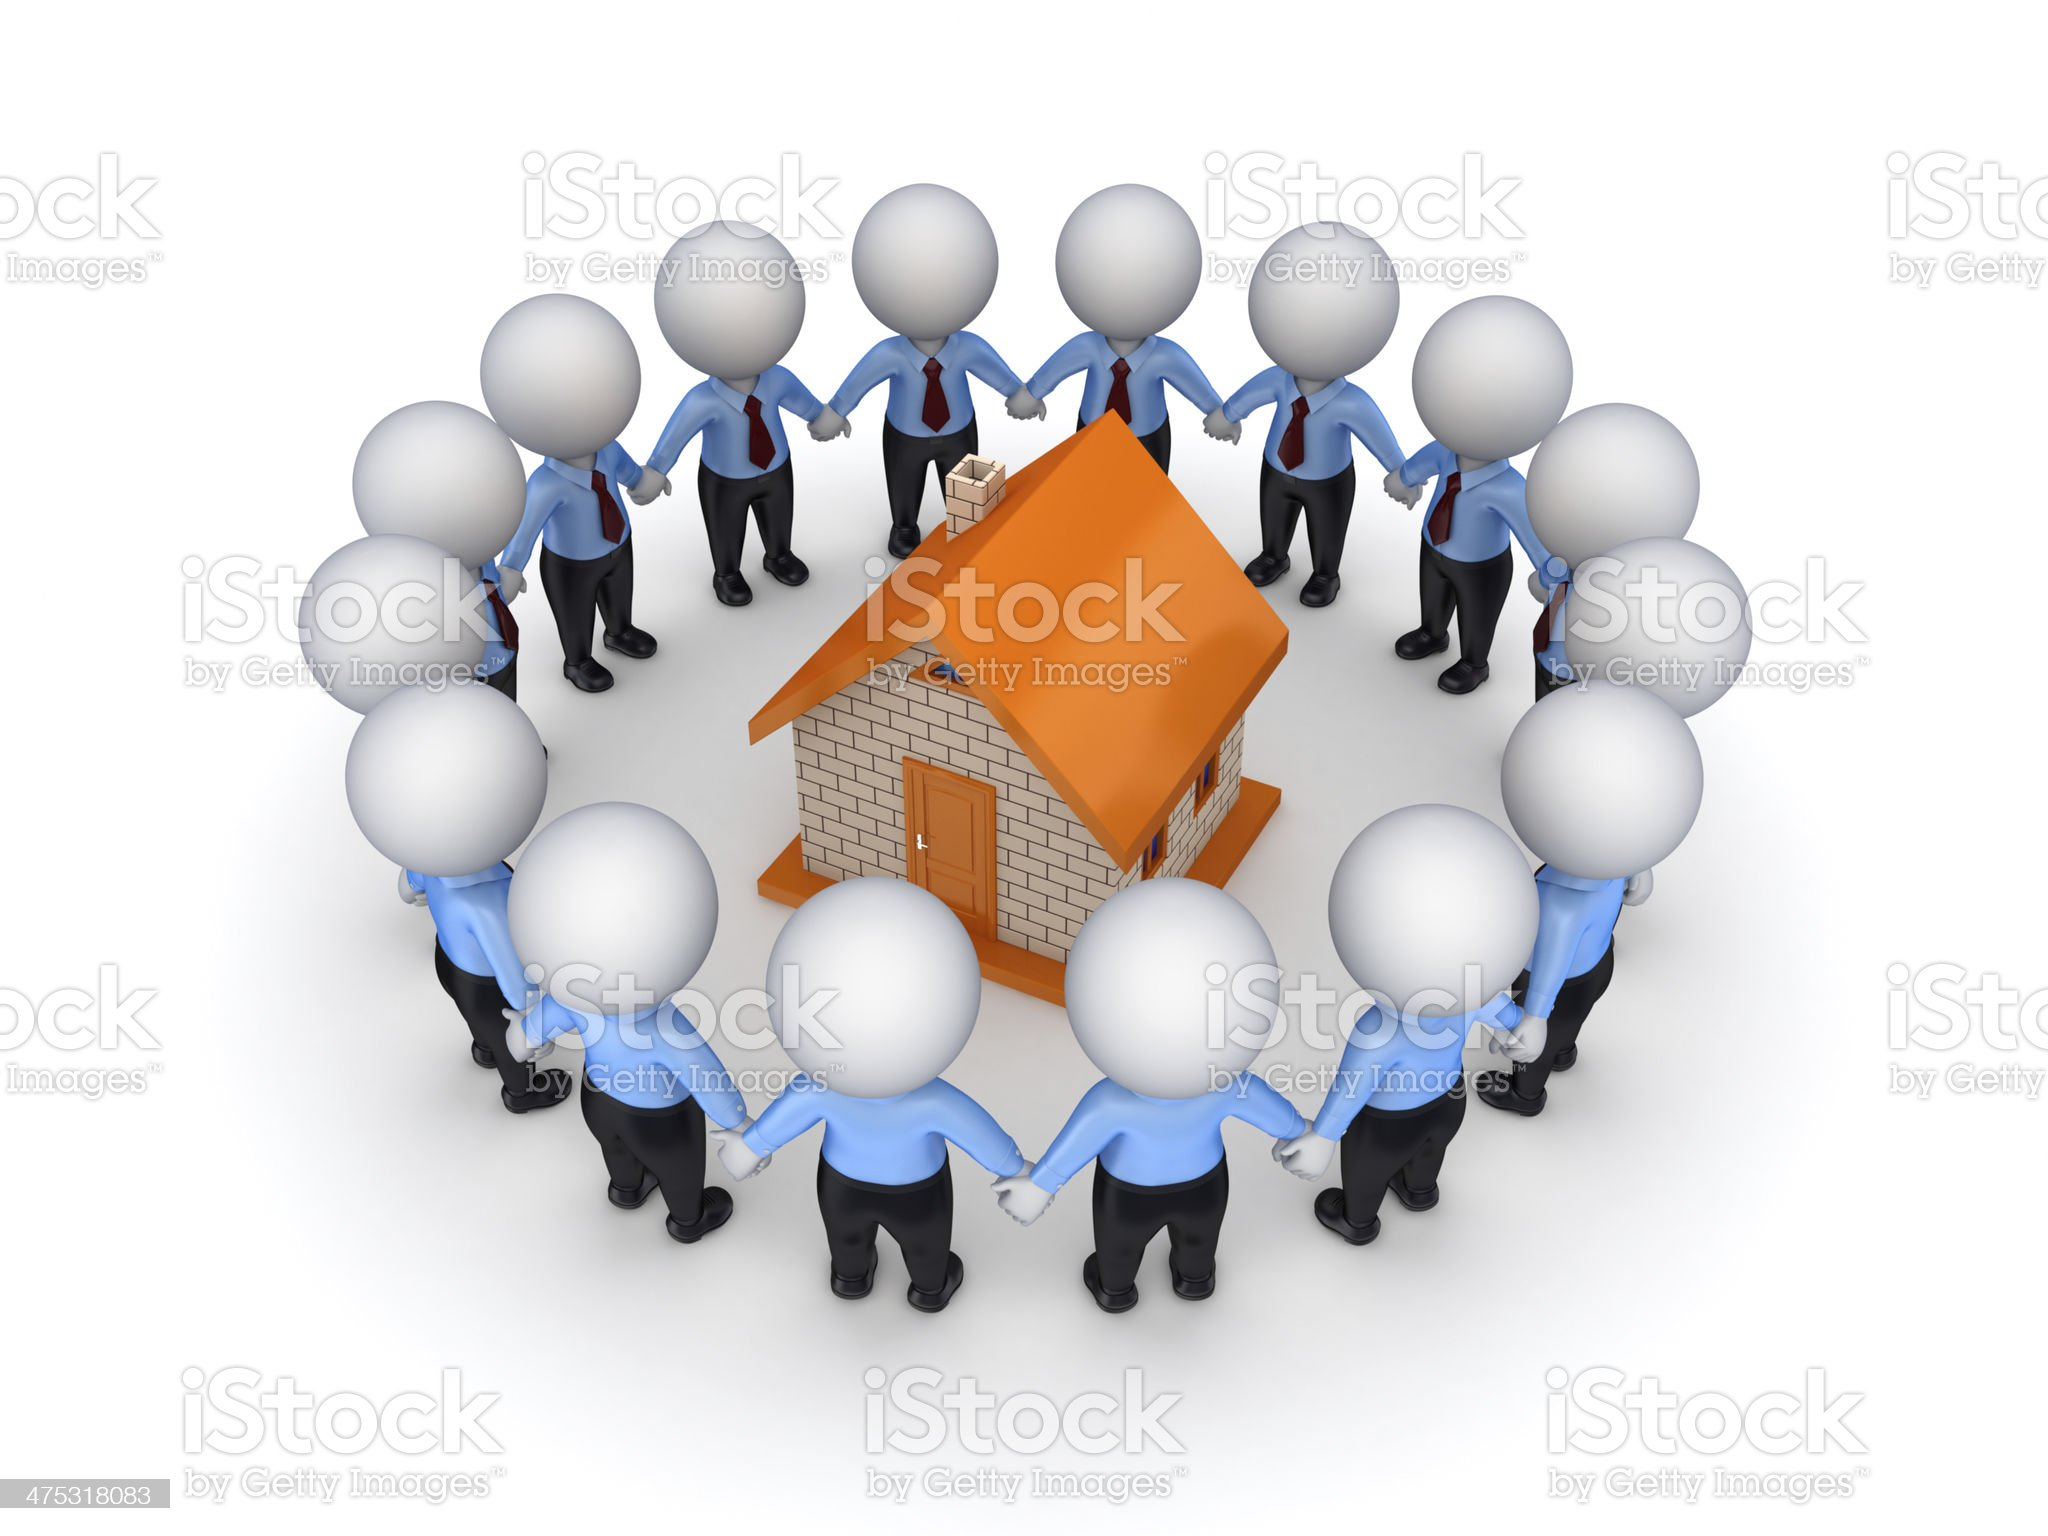 Teamwork concept. royalty-free stock photo